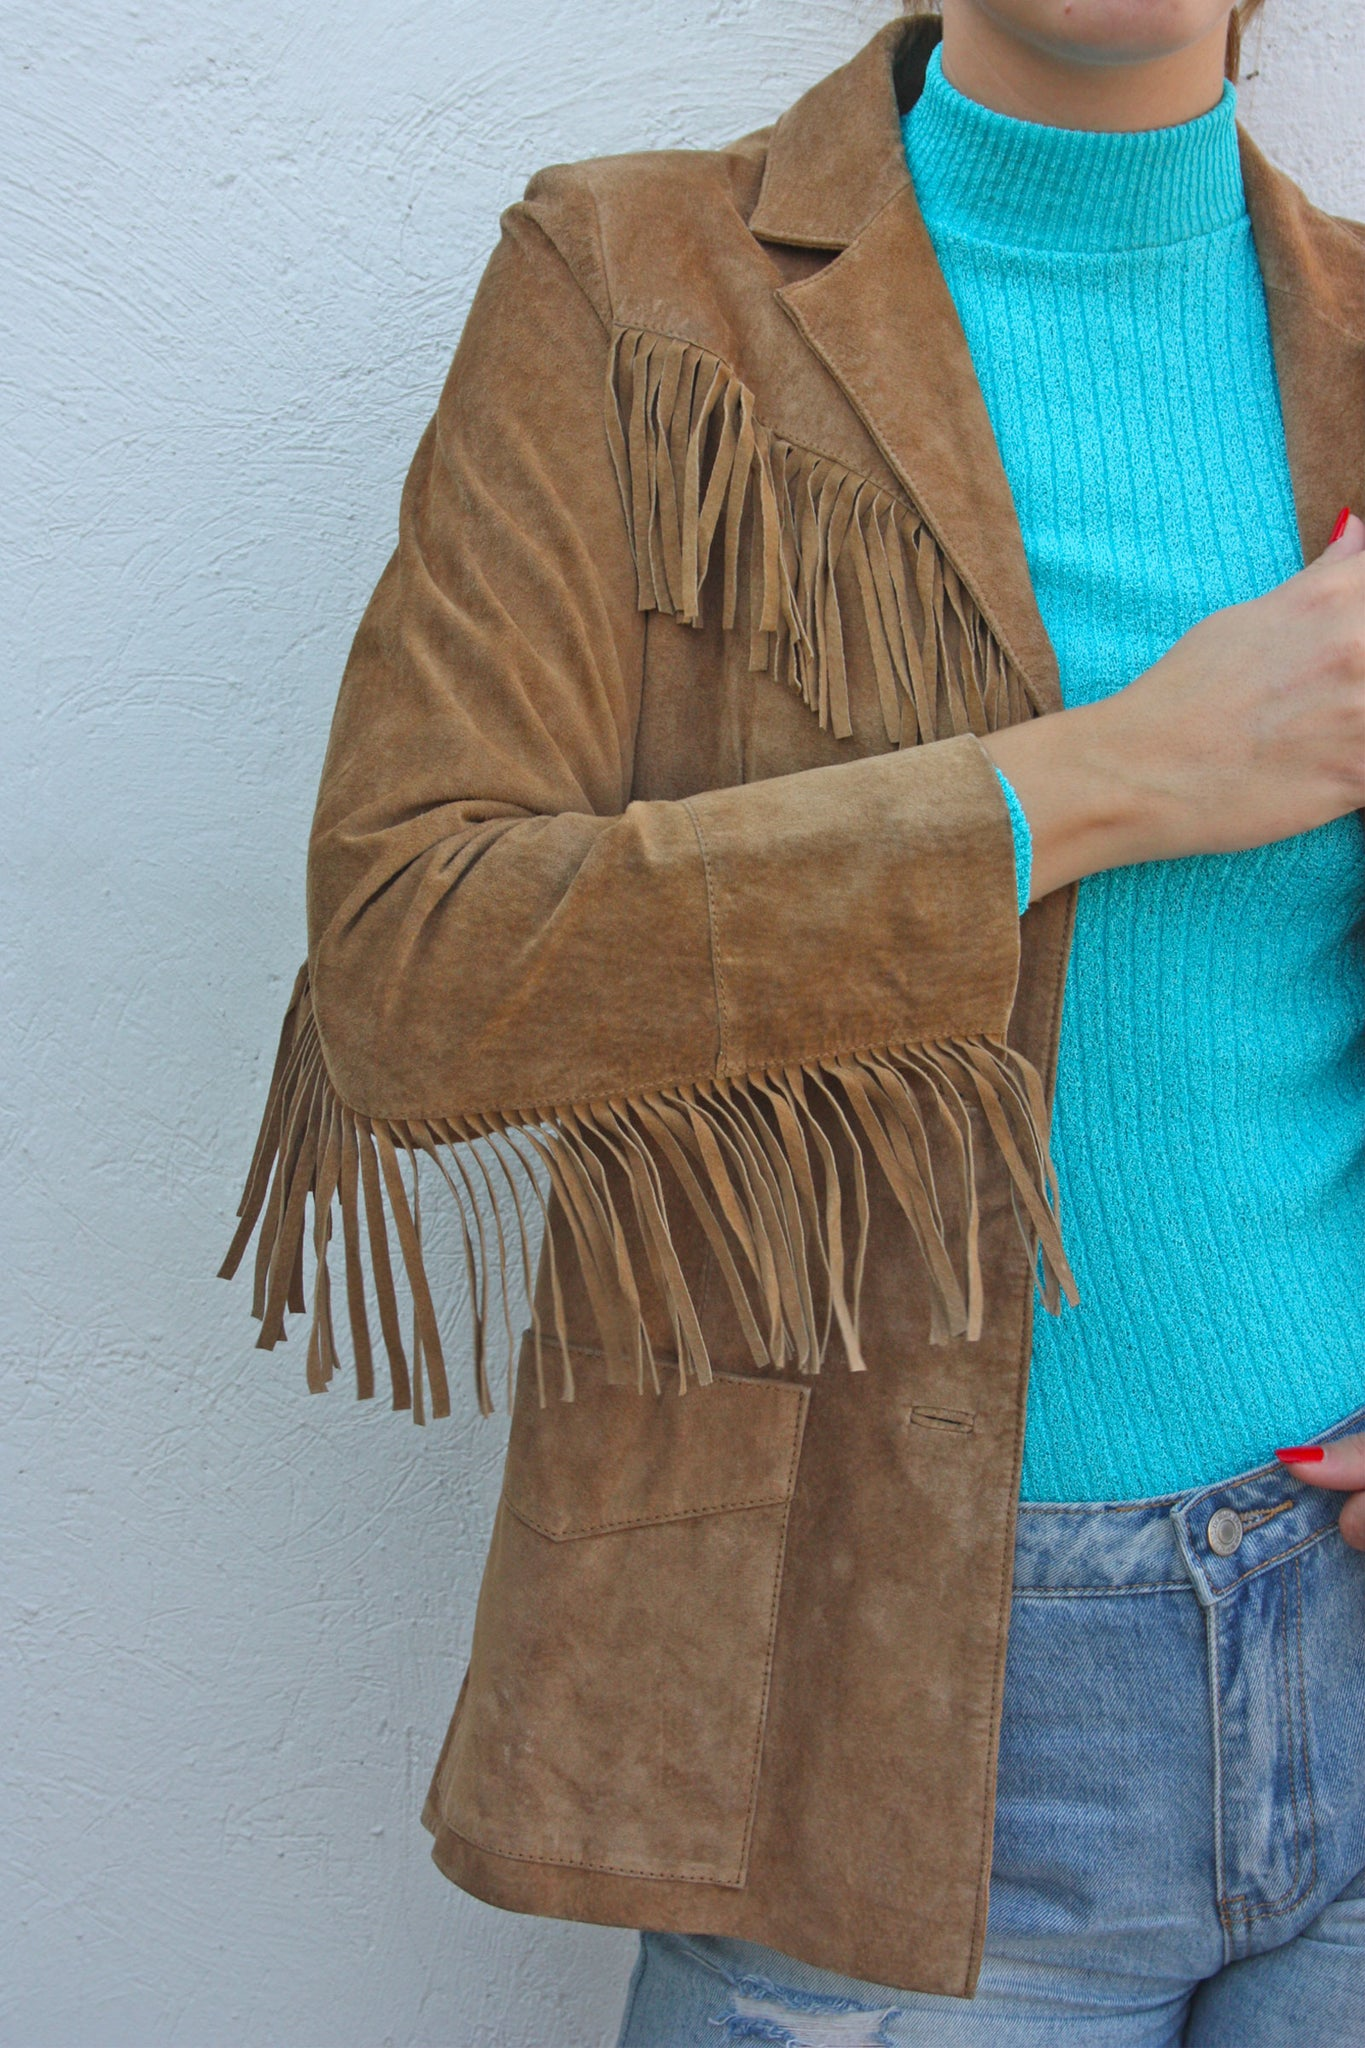 70's suede fringe tan jacket - Shop SoLovesVintage